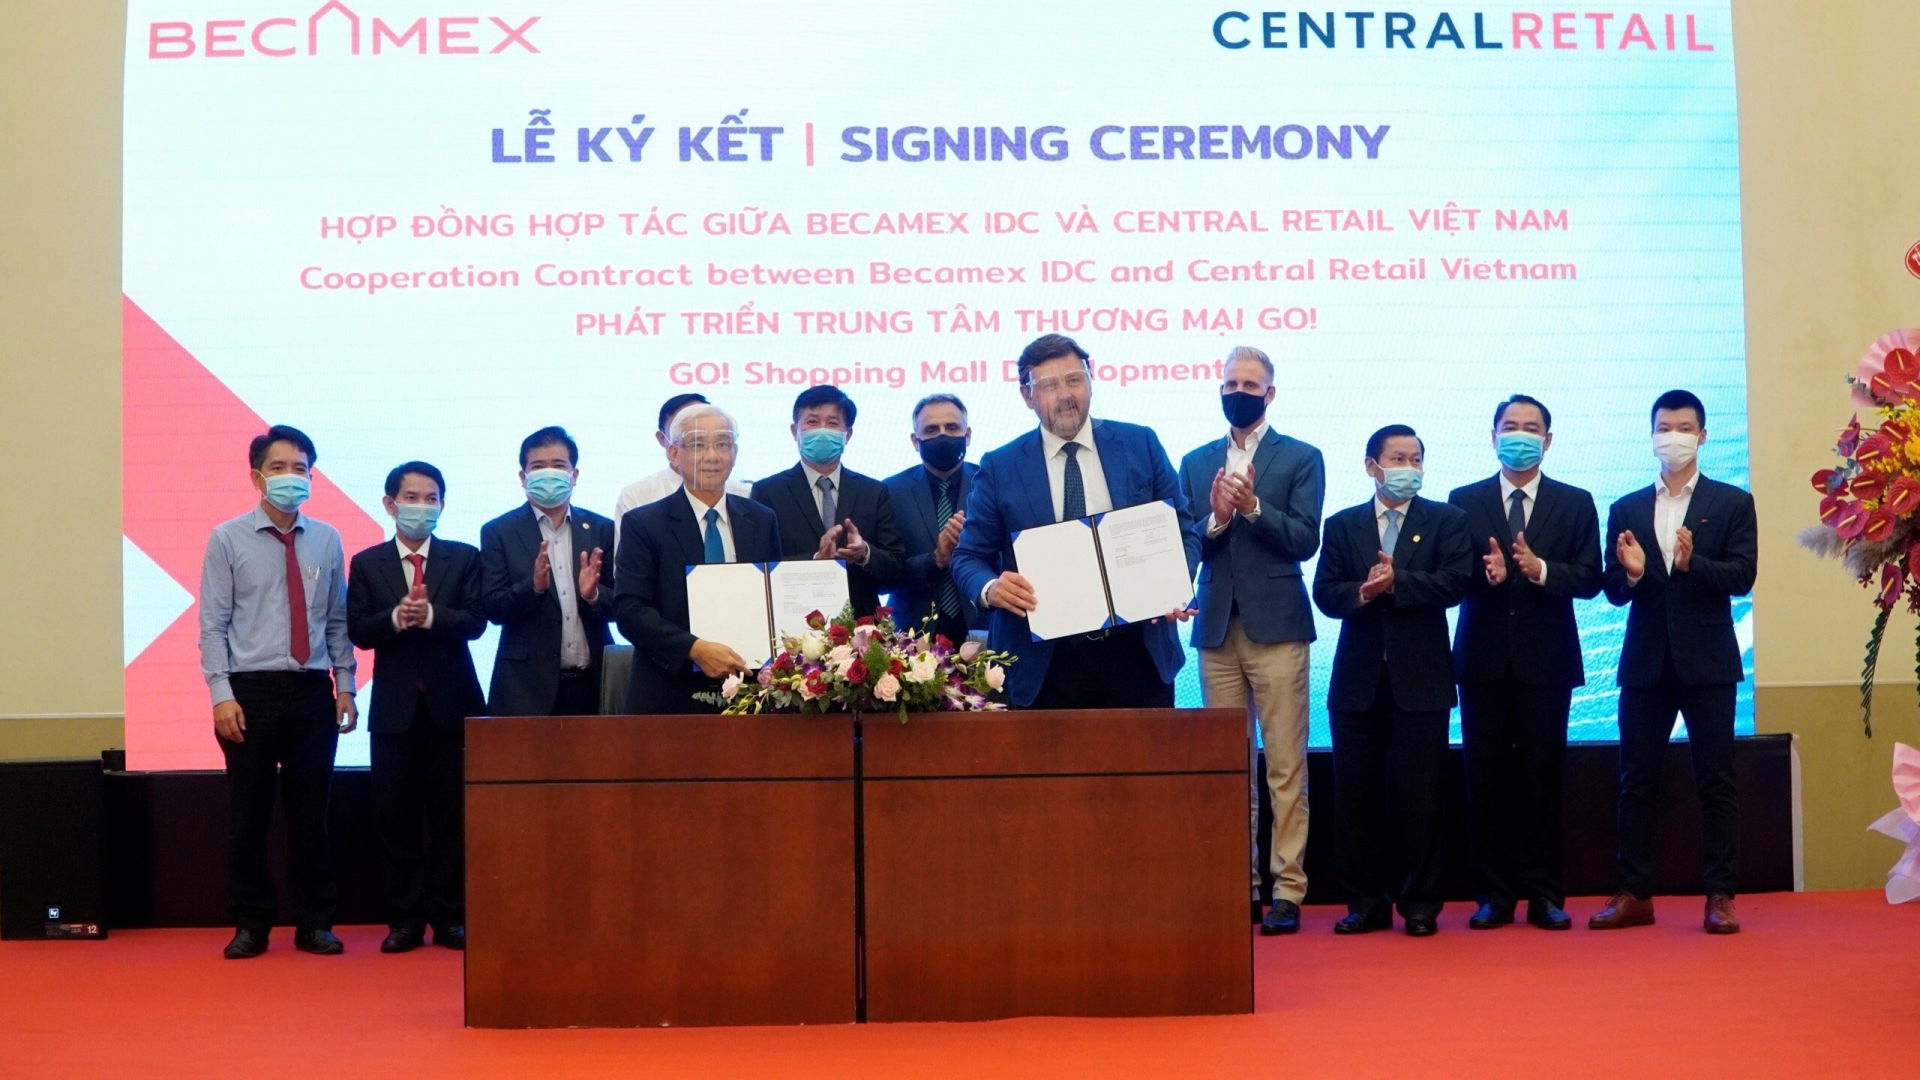 becamex idc and central retail vietnam co develop go shopping mall in binh duong